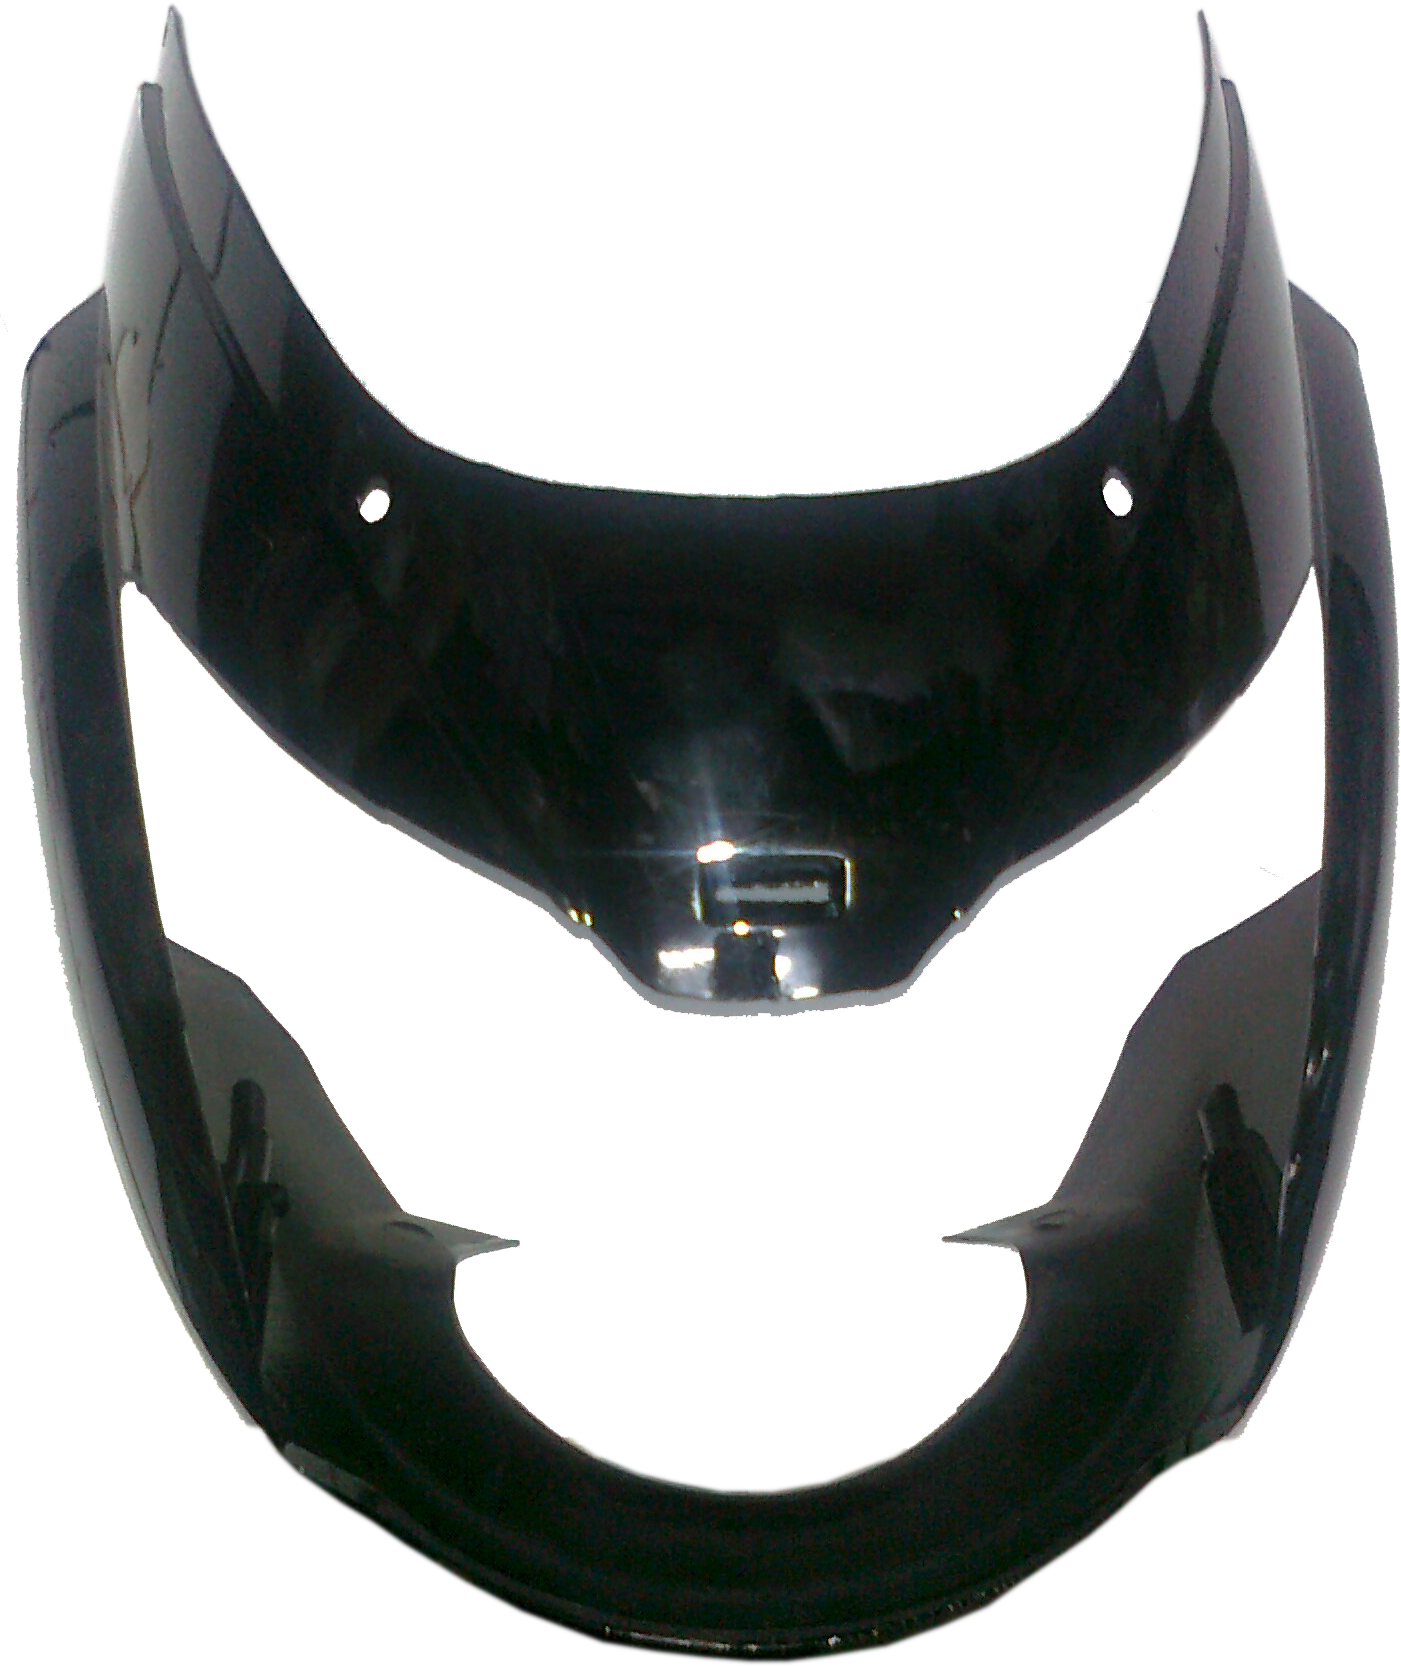 Bike stickering designs for pulsar 150 -  Front Fairing Visor Pulsar Ub With Oet Glass Safex